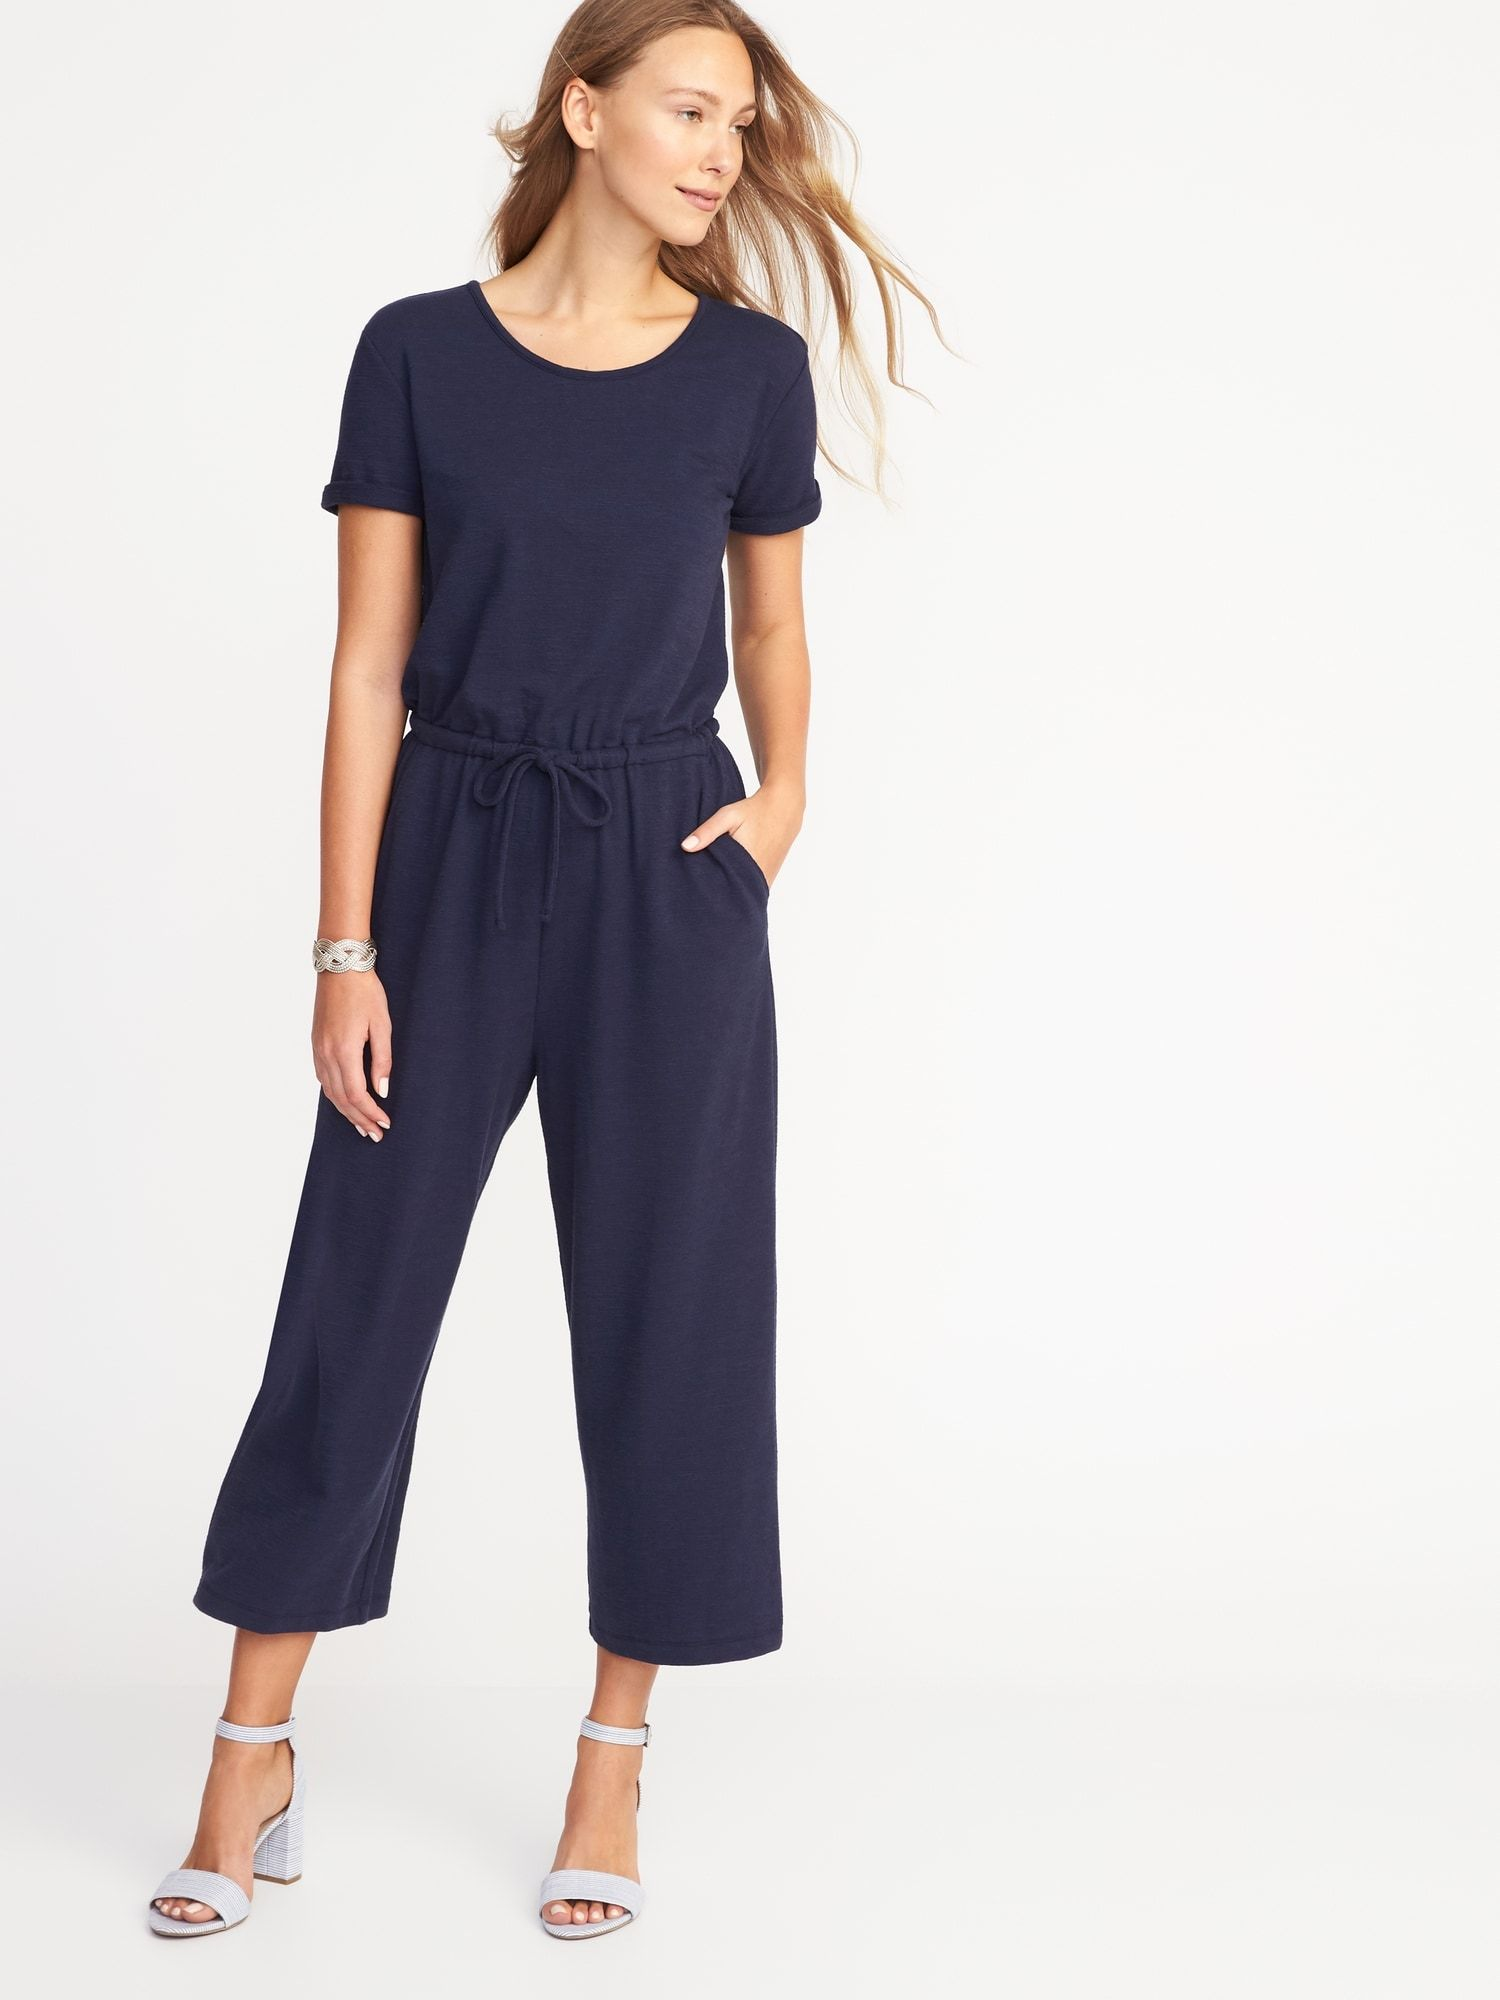 04a8e088edf5 Wide-Leg Bouclé Jumpsuit for Women